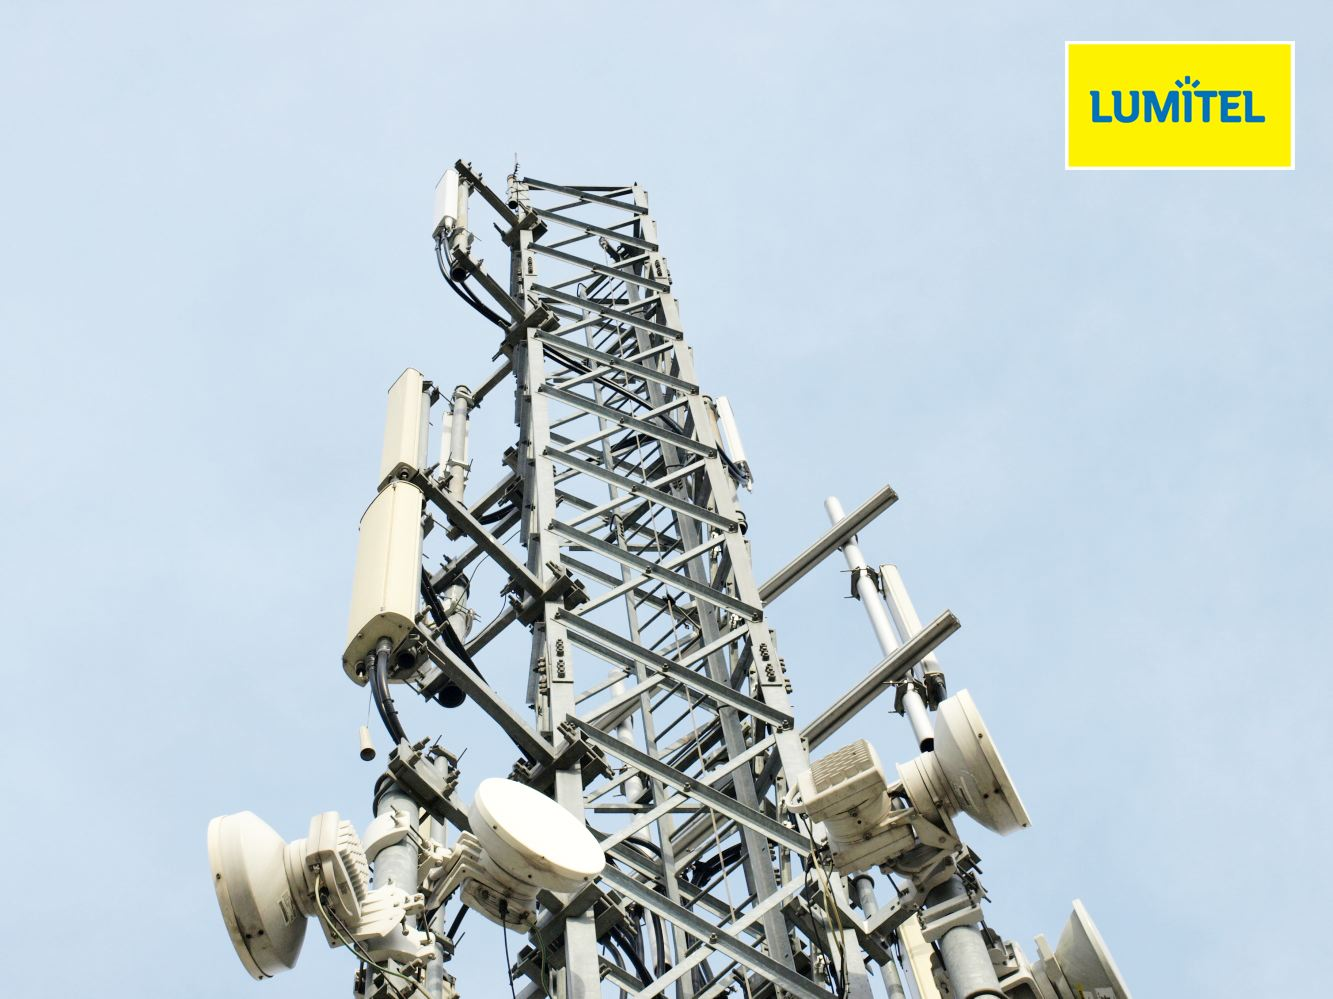 Lumitel uses Globiots for Remote Monitoring of their BTS Stations